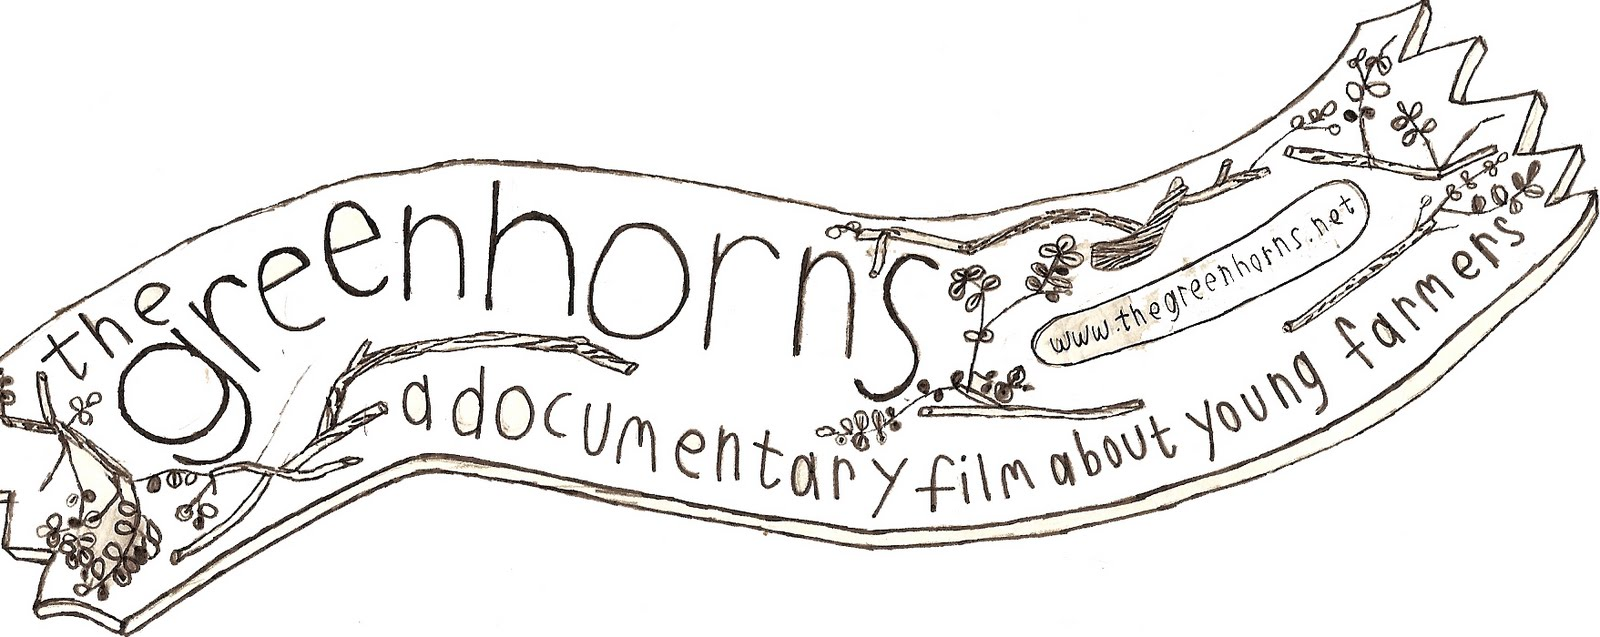 greenhorns documentary poster